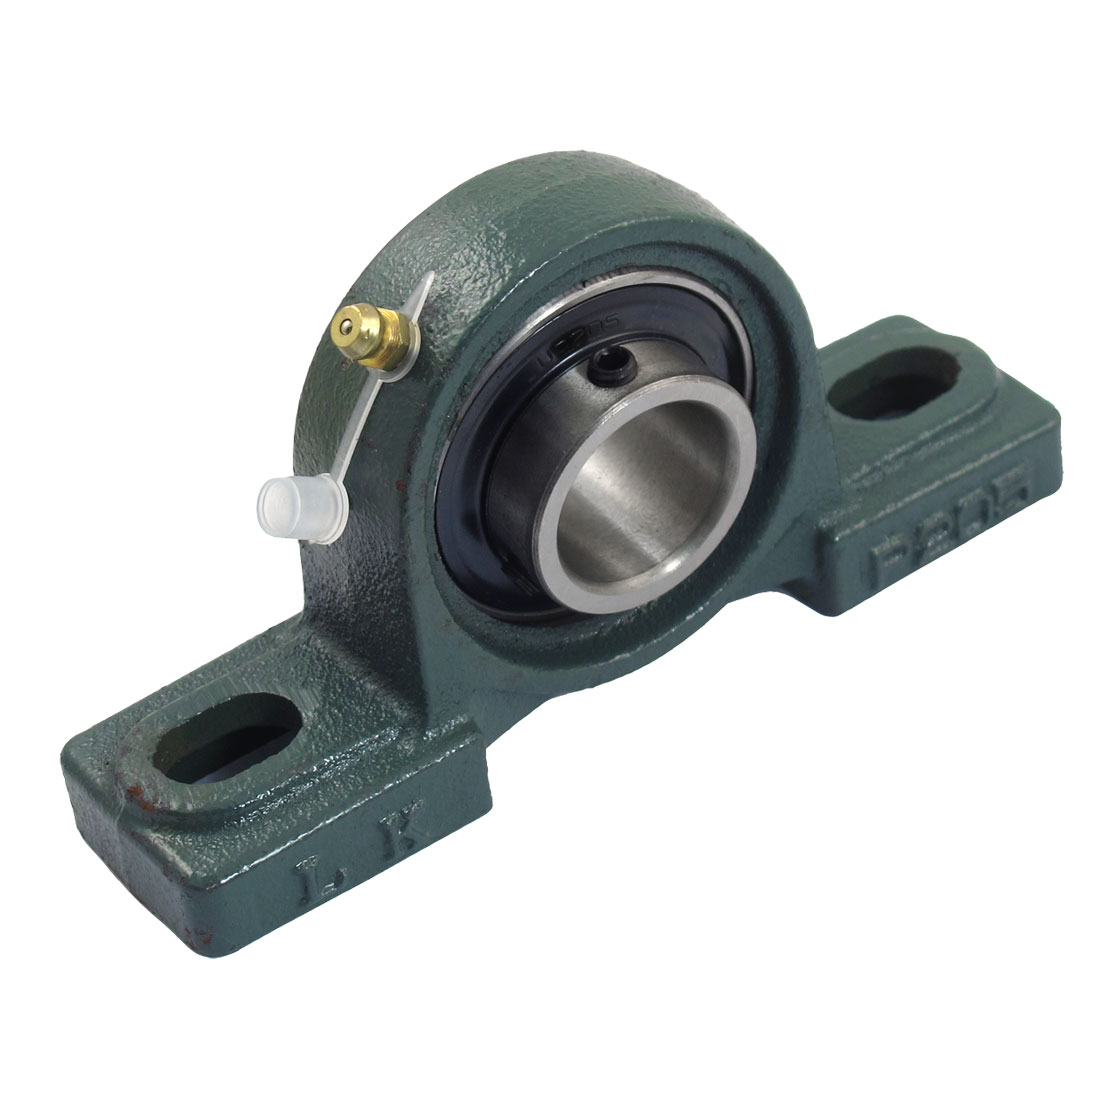 UCP205 25mm Mounted Block Cast Housing Self-aligning Pillow Bearing